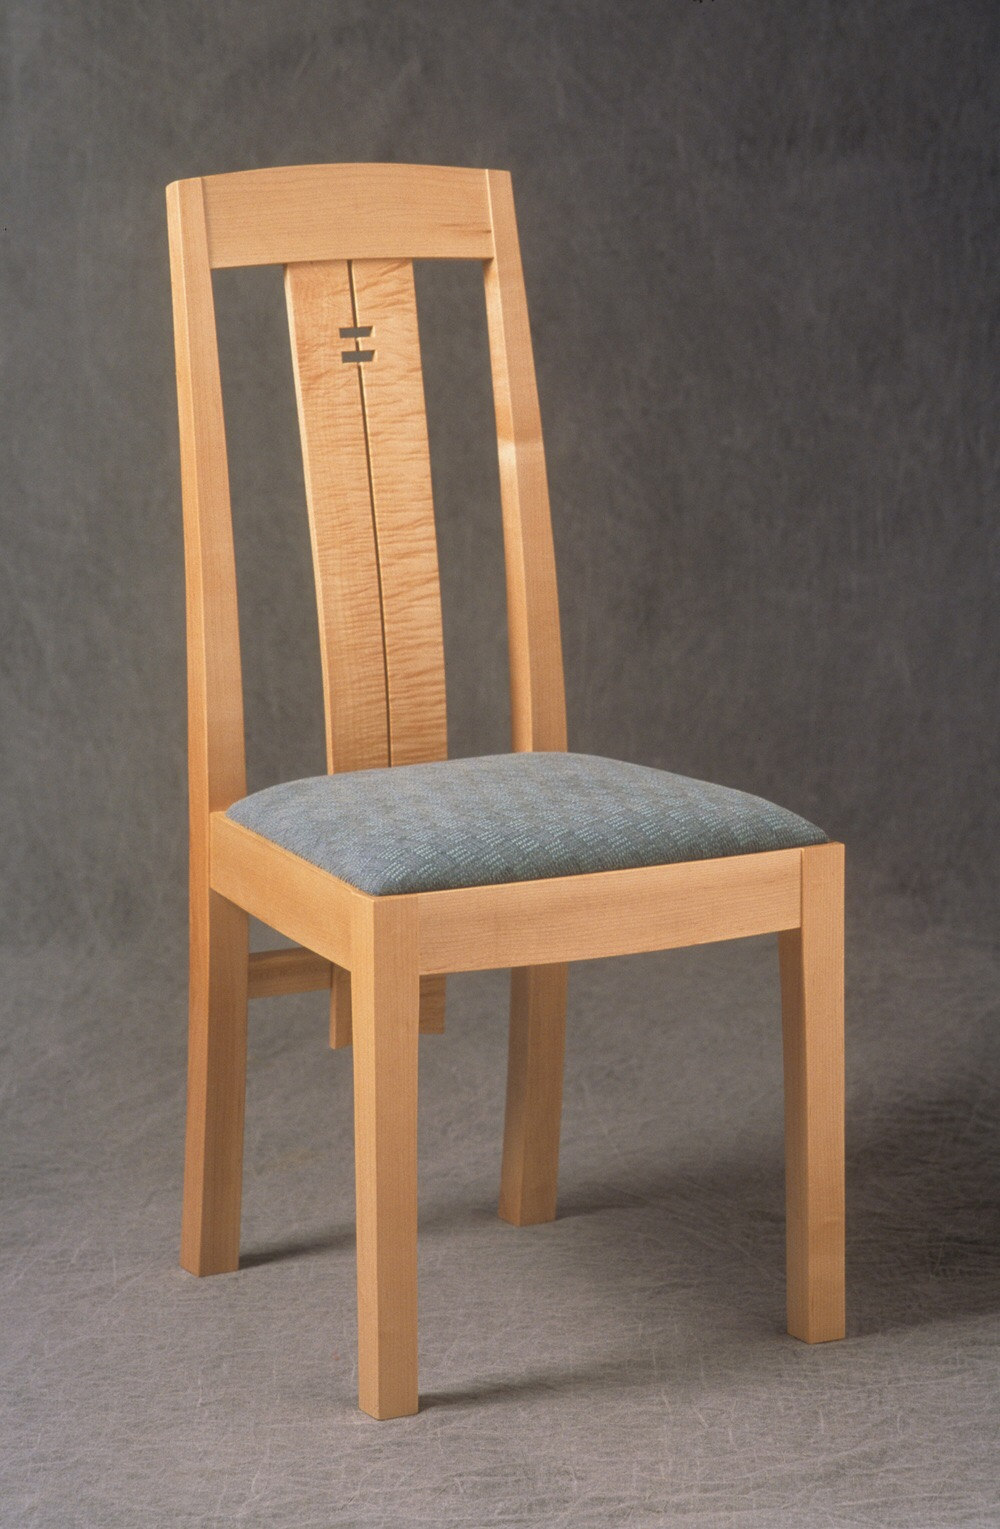 Maple dining chair with bent laminations, upholstery